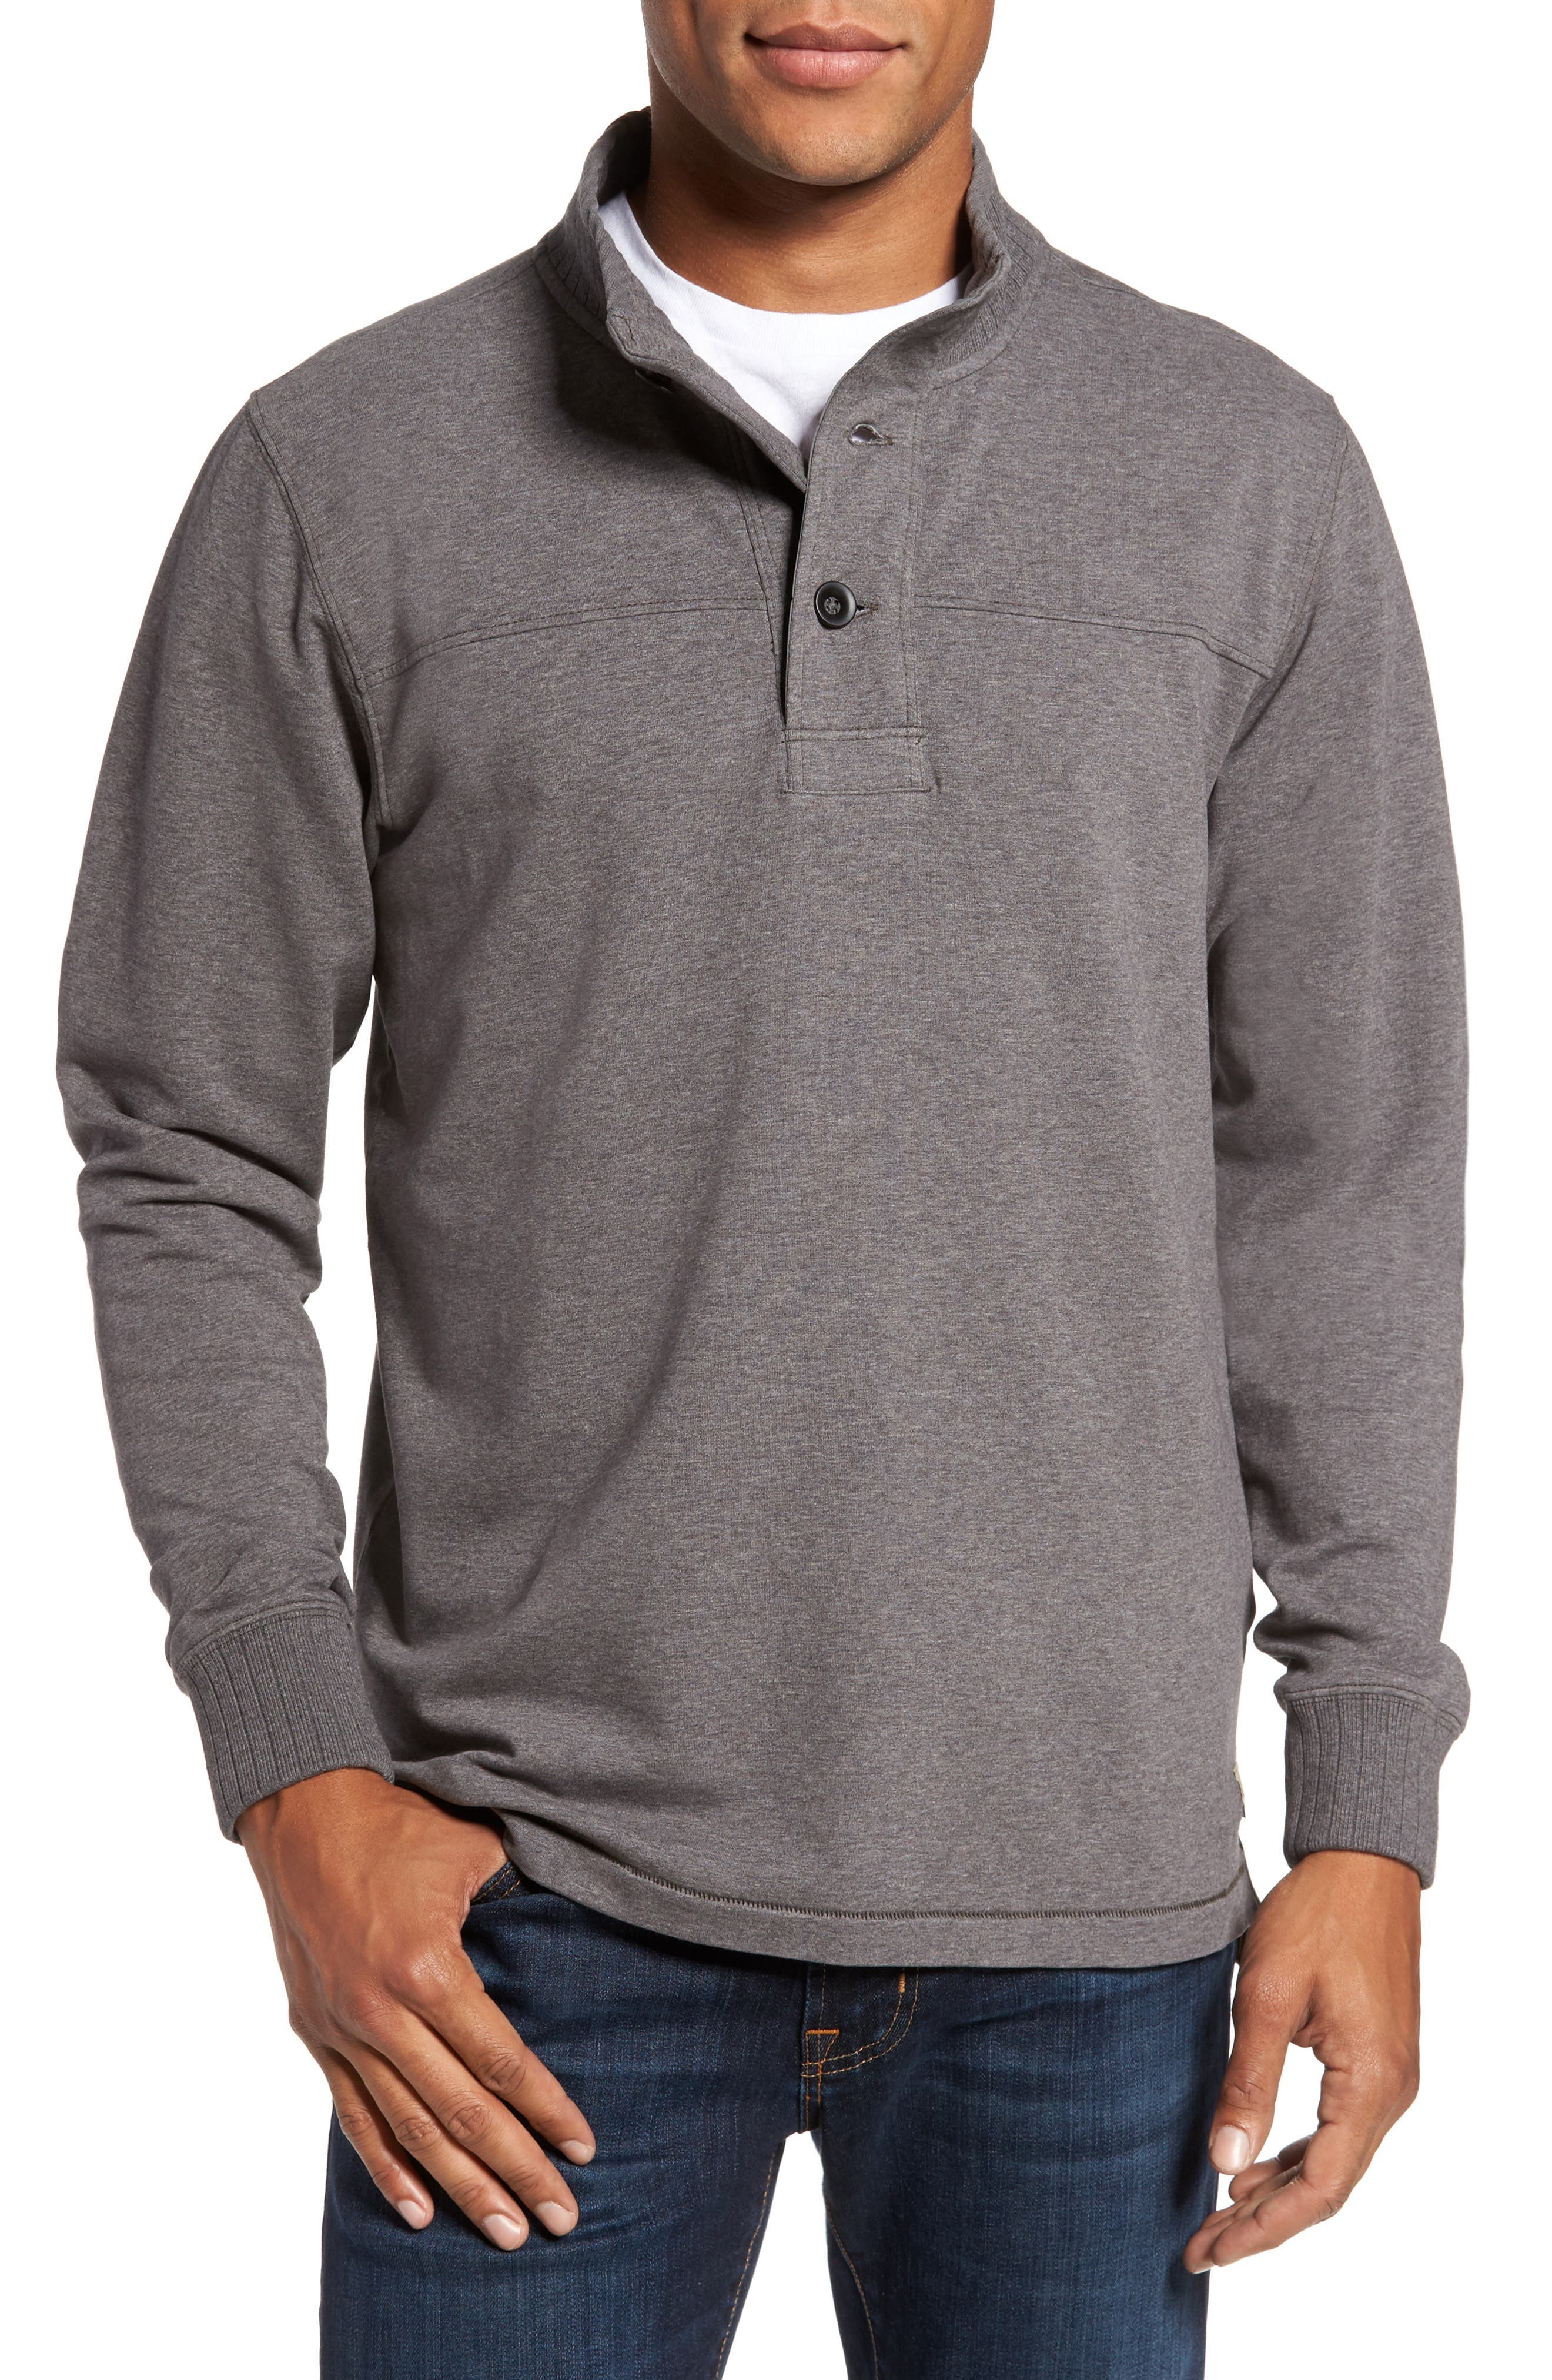 Alternate Image 1 Selected - Jeremiah Taylor Quarter Button Pullover